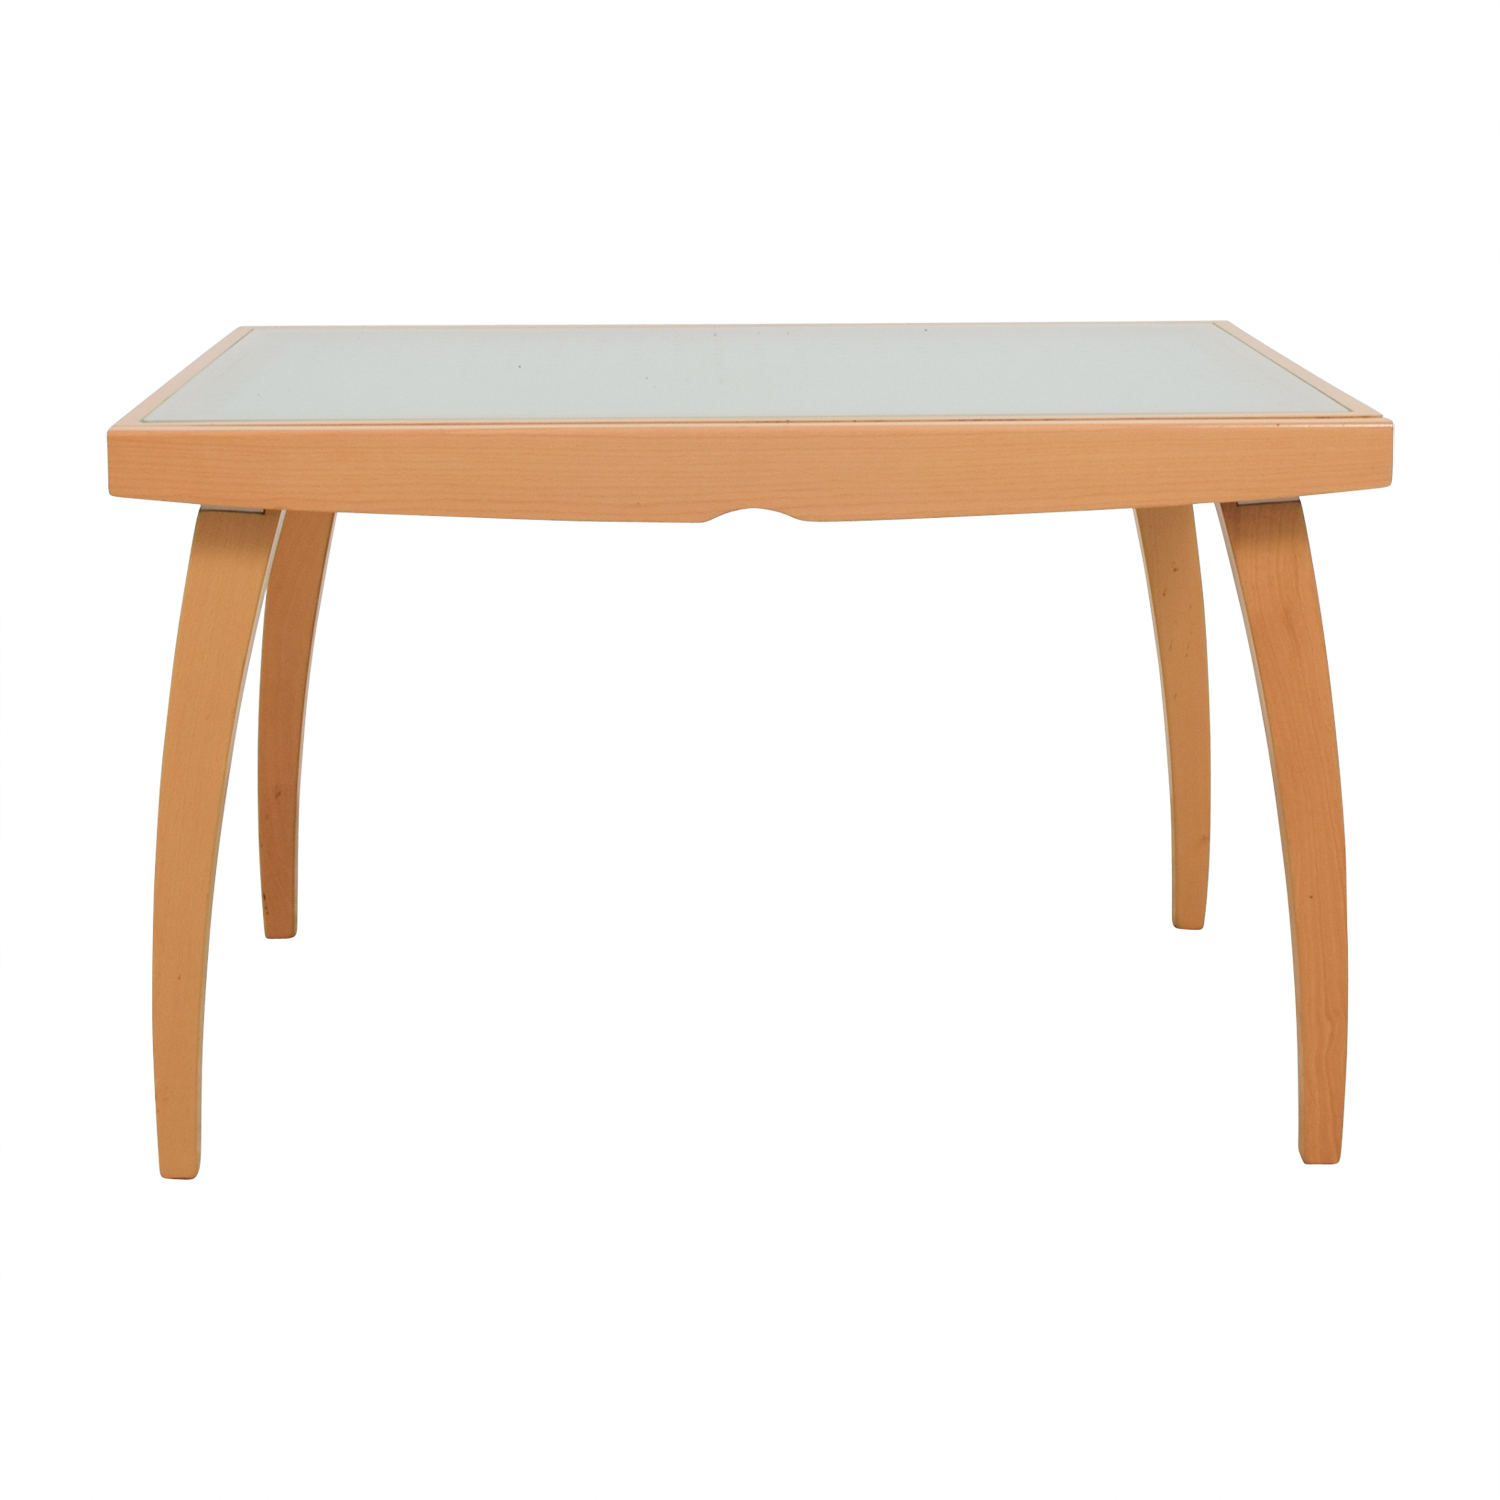 Jensen Lewis Jensen Lewis Calligaris Glass Top and Wood Base Table used